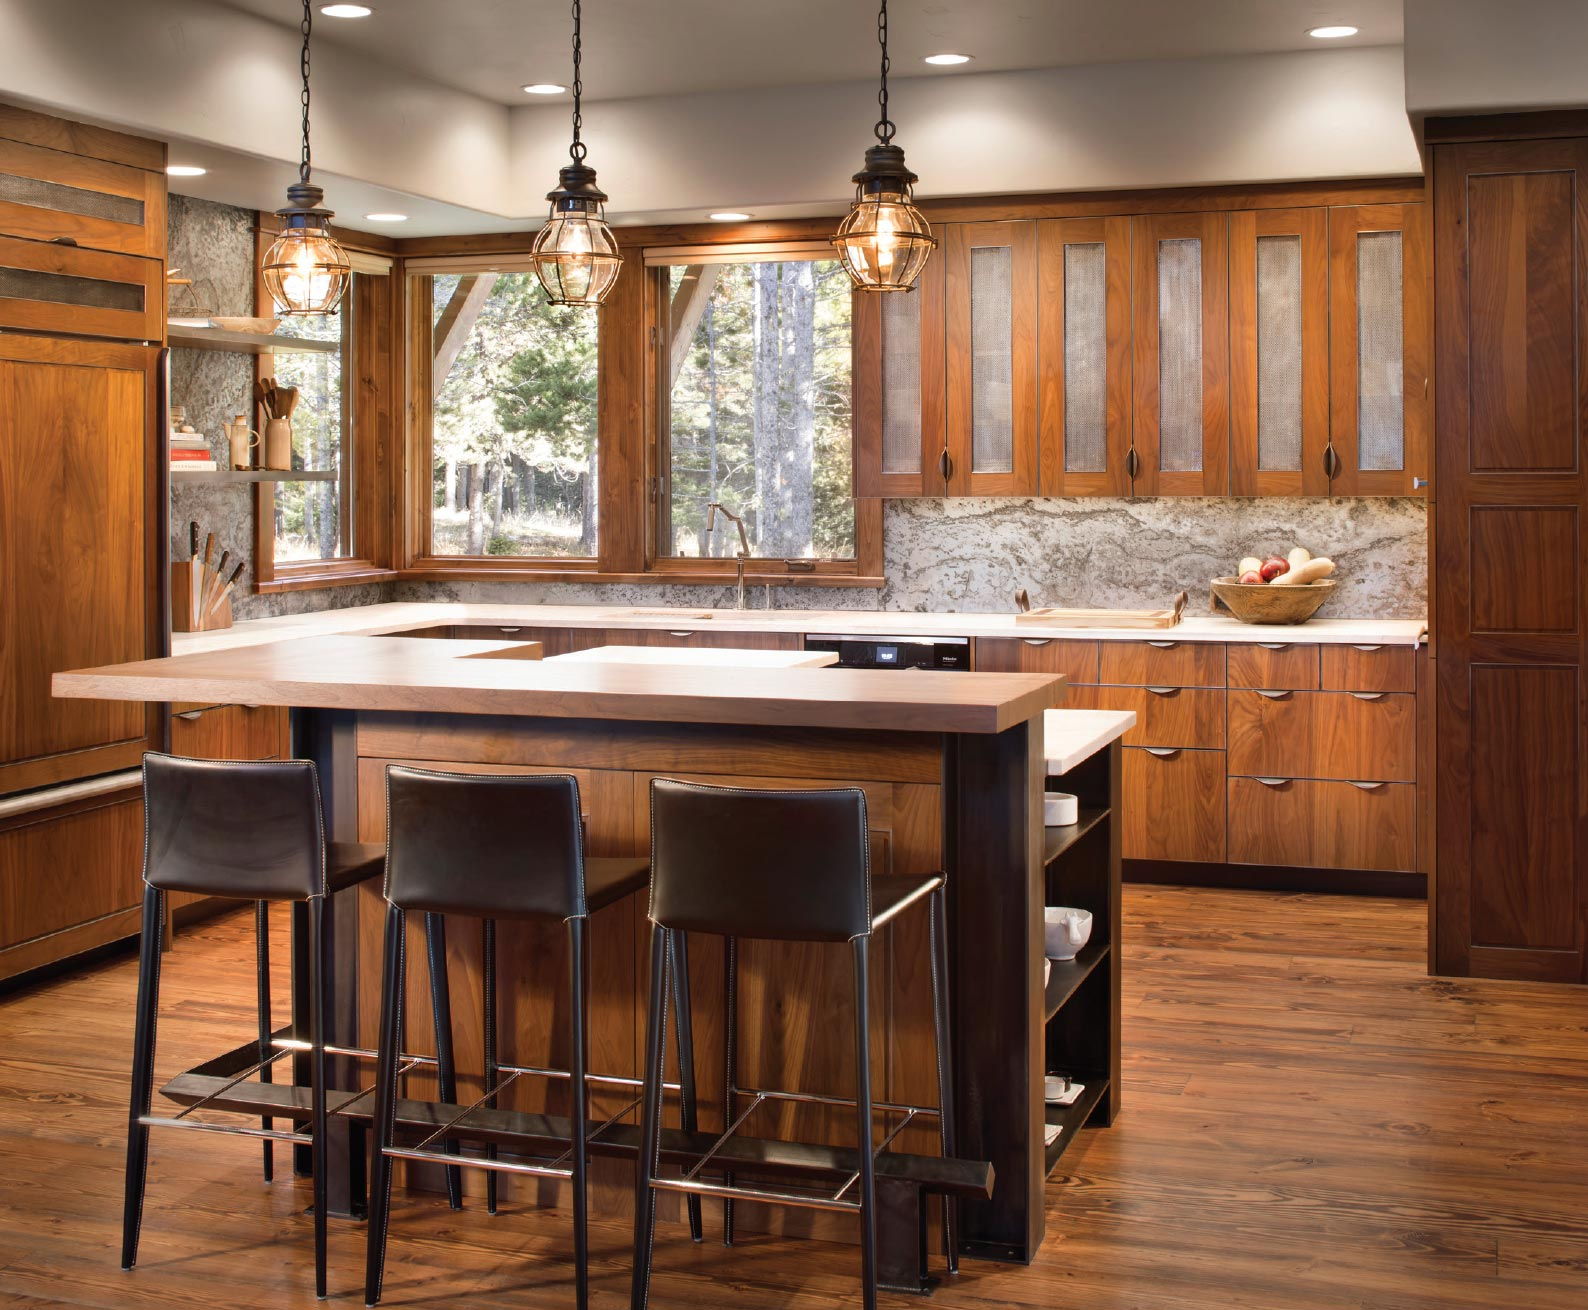 From Art to Architecture- Bozeman-Big Sky Kitchen